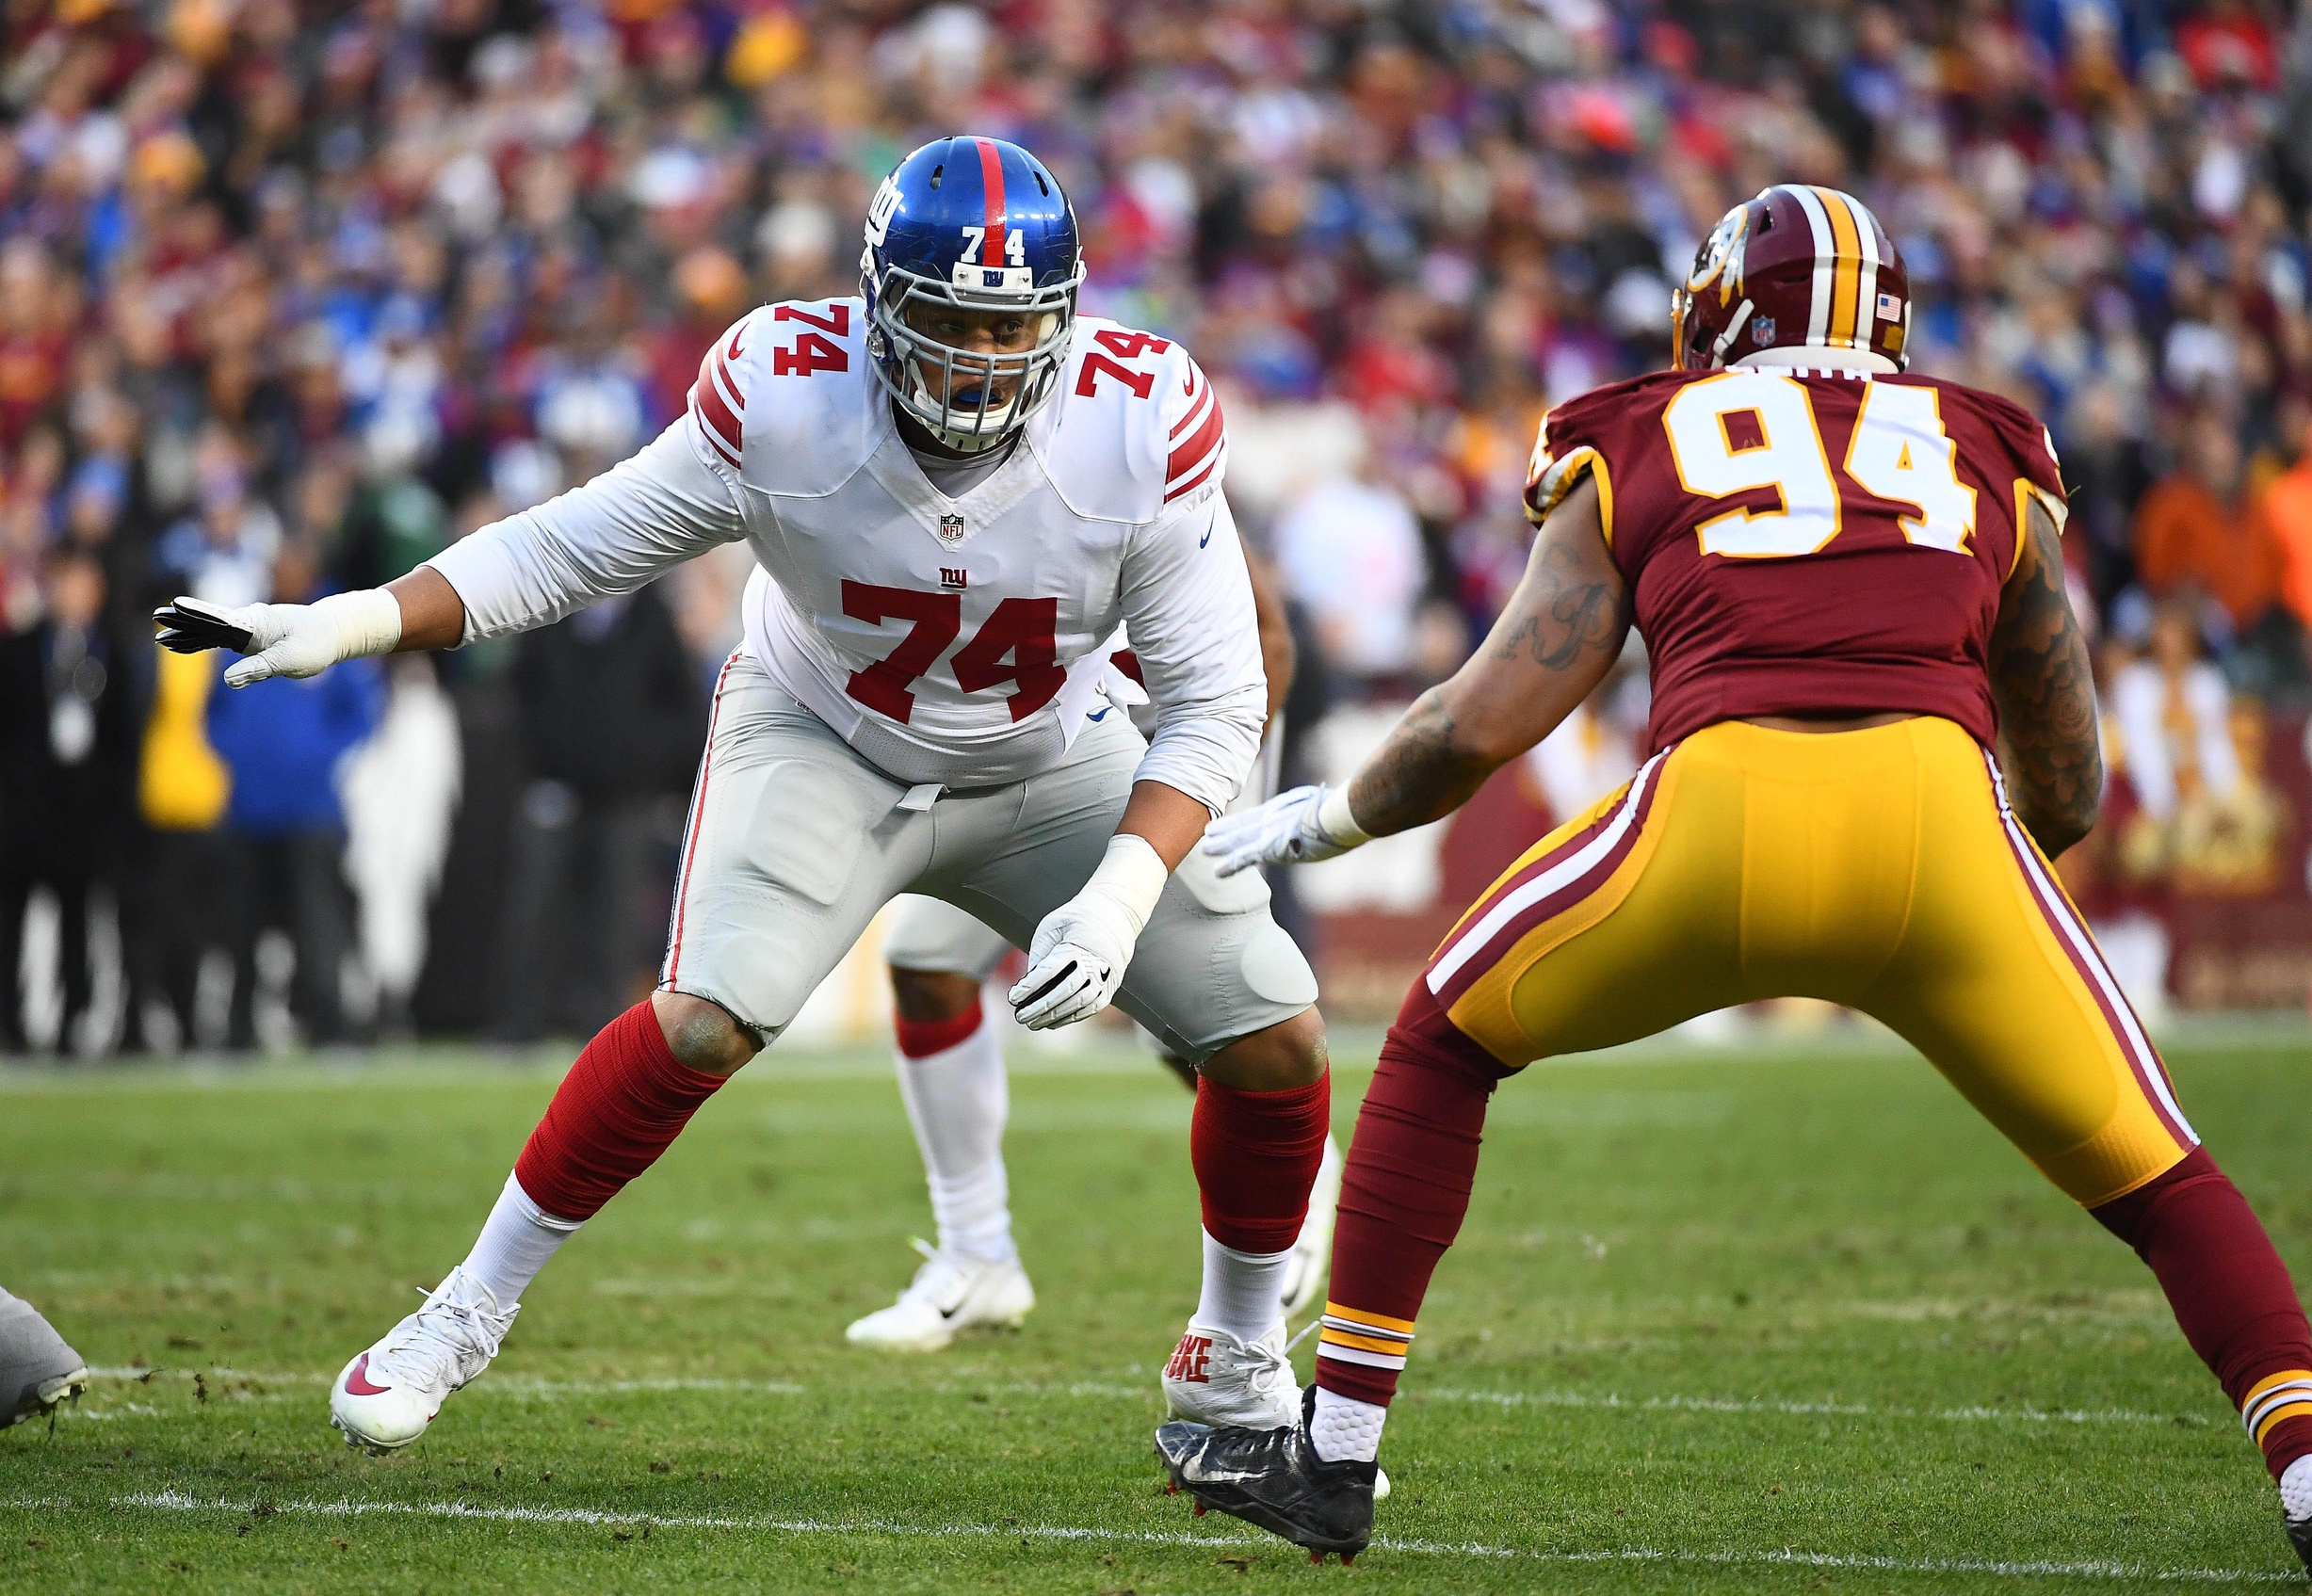 New York Giants will release Ereck Flowers on Tuesday if not traded